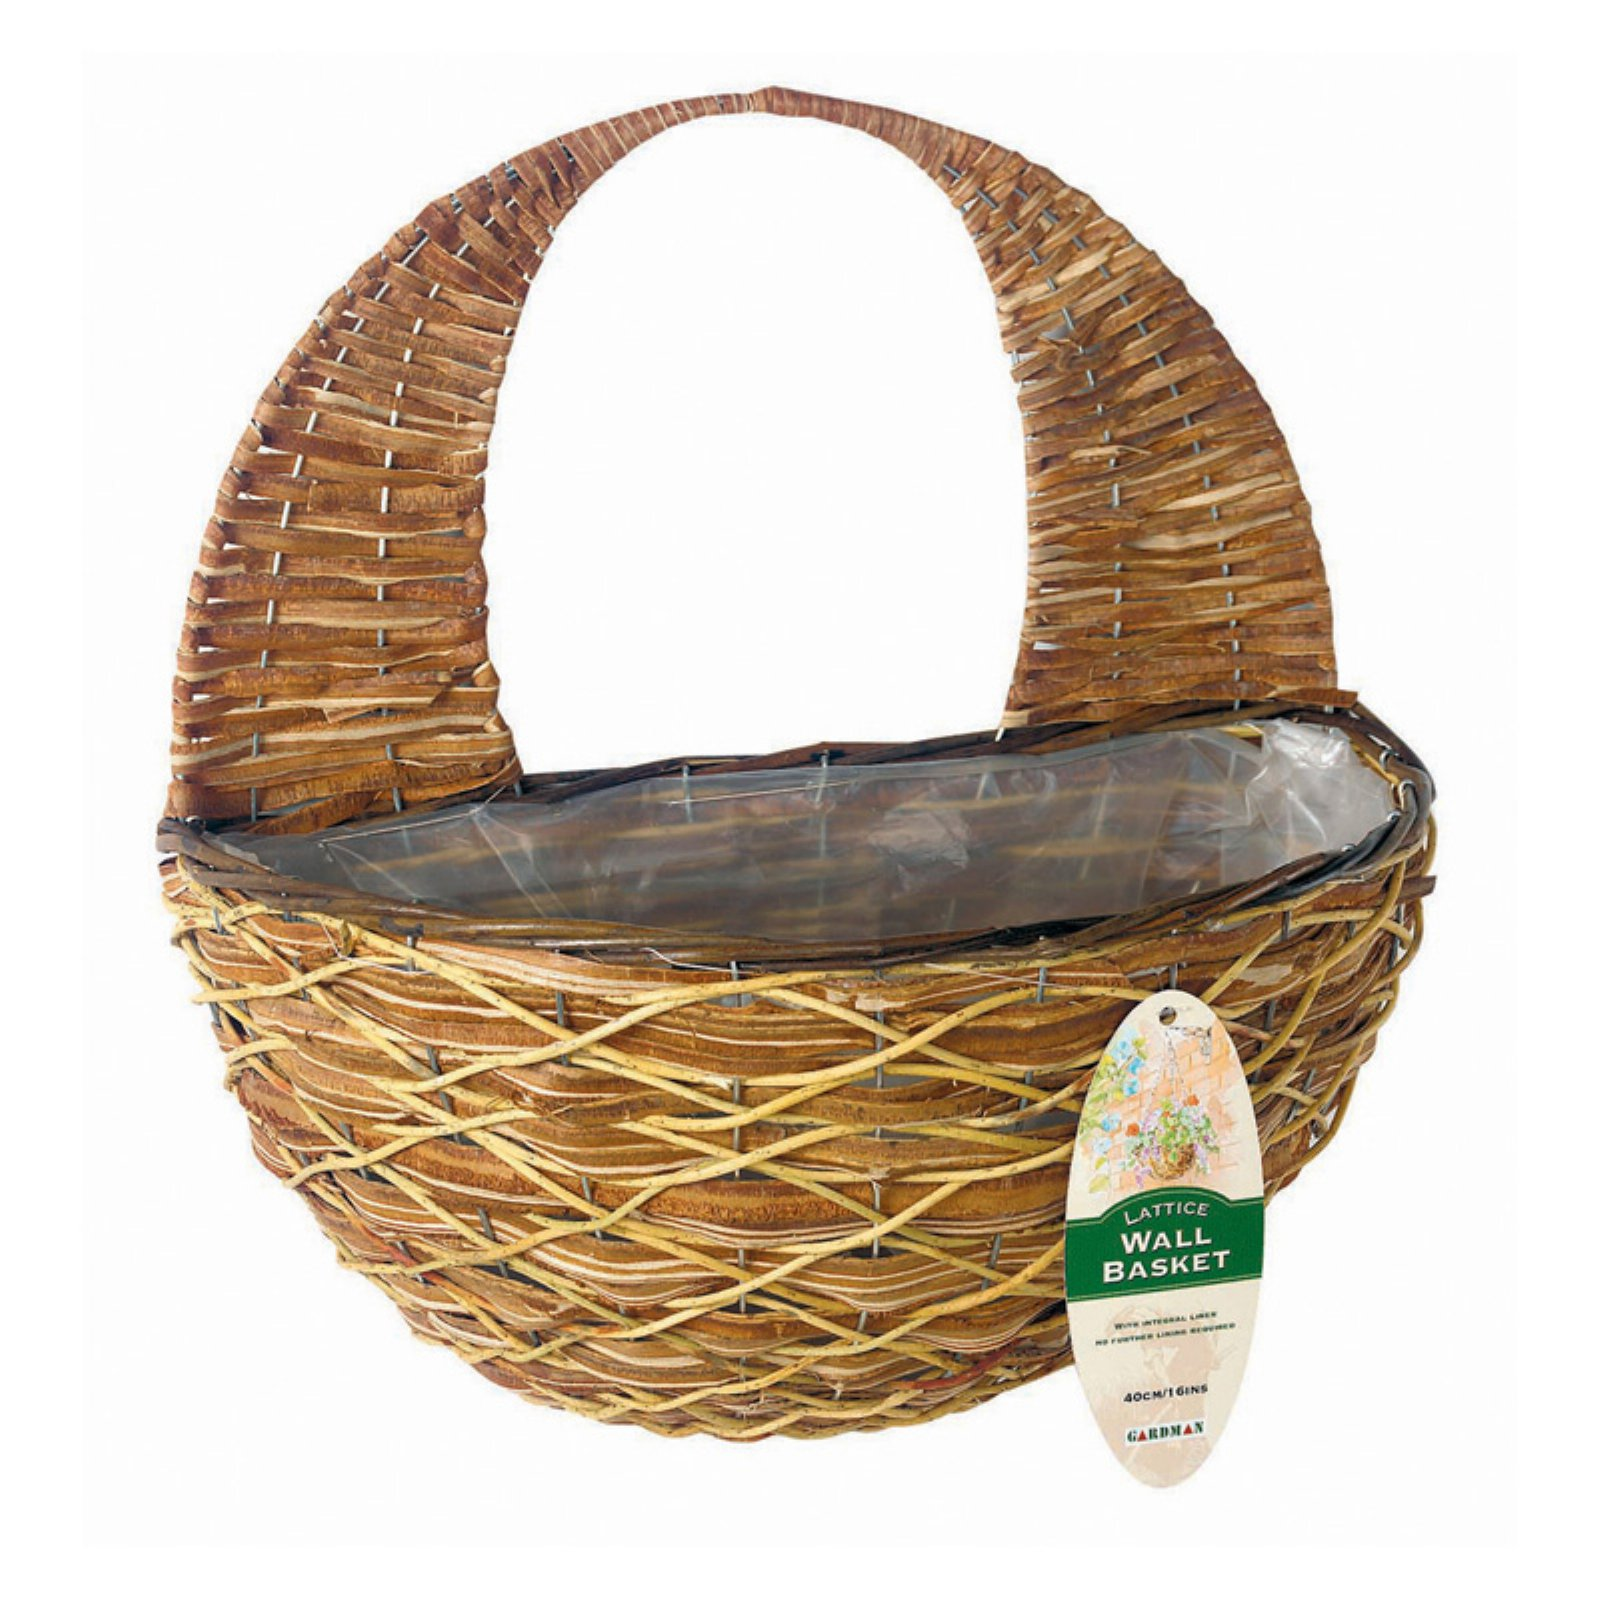 Gardman 16 in. Lattice Rattan Wall Basket